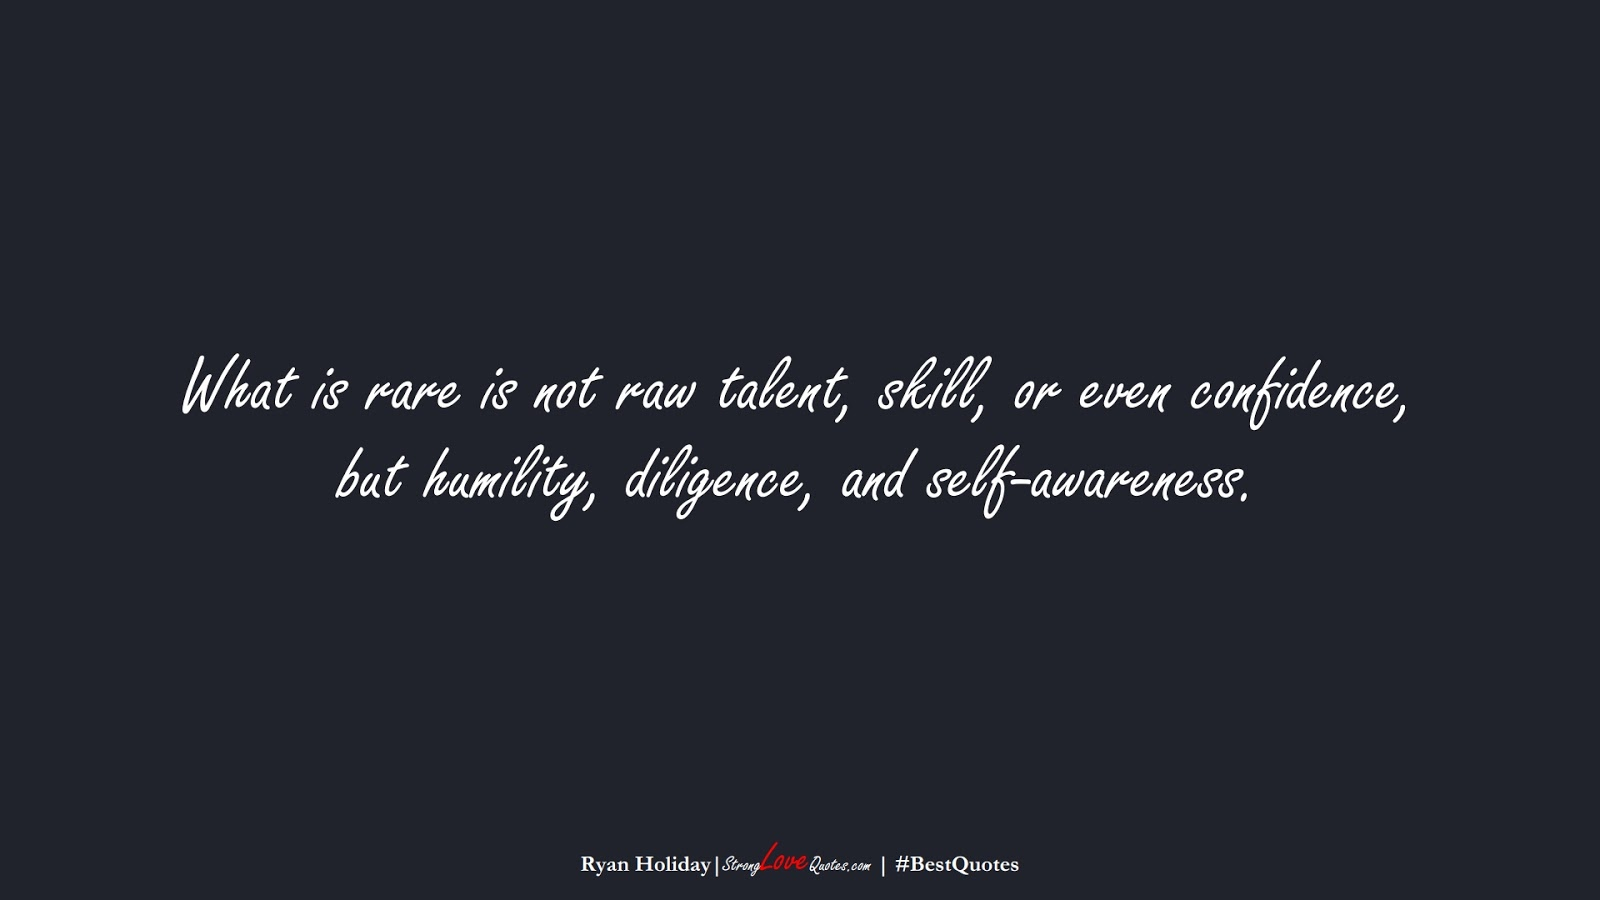 What is rare is not raw talent, skill, or even confidence, but humility, diligence, and self-awareness. (Ryan Holiday);  #BestQuotes